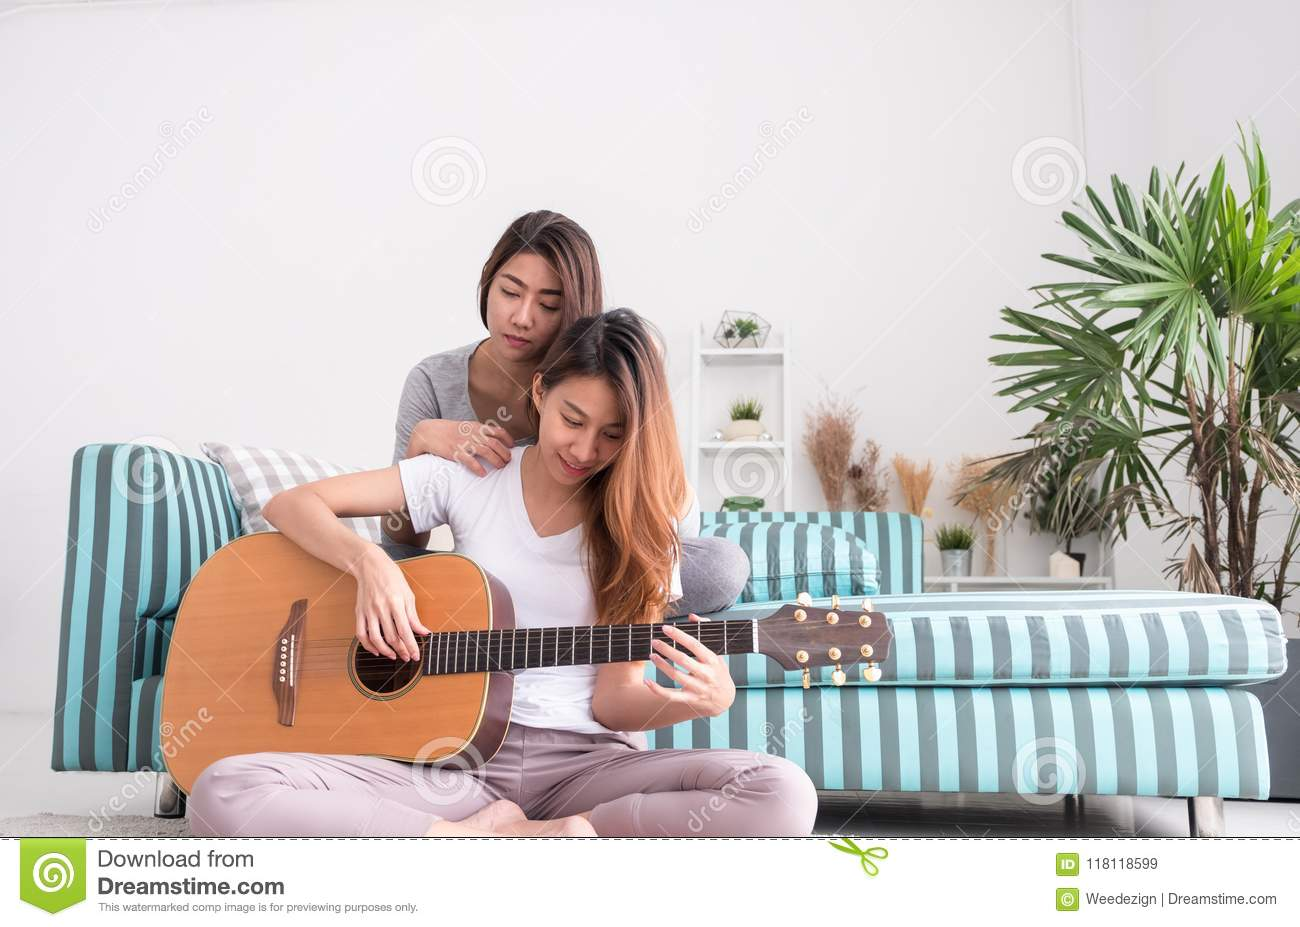 With you lesbian guitar silhouette above told